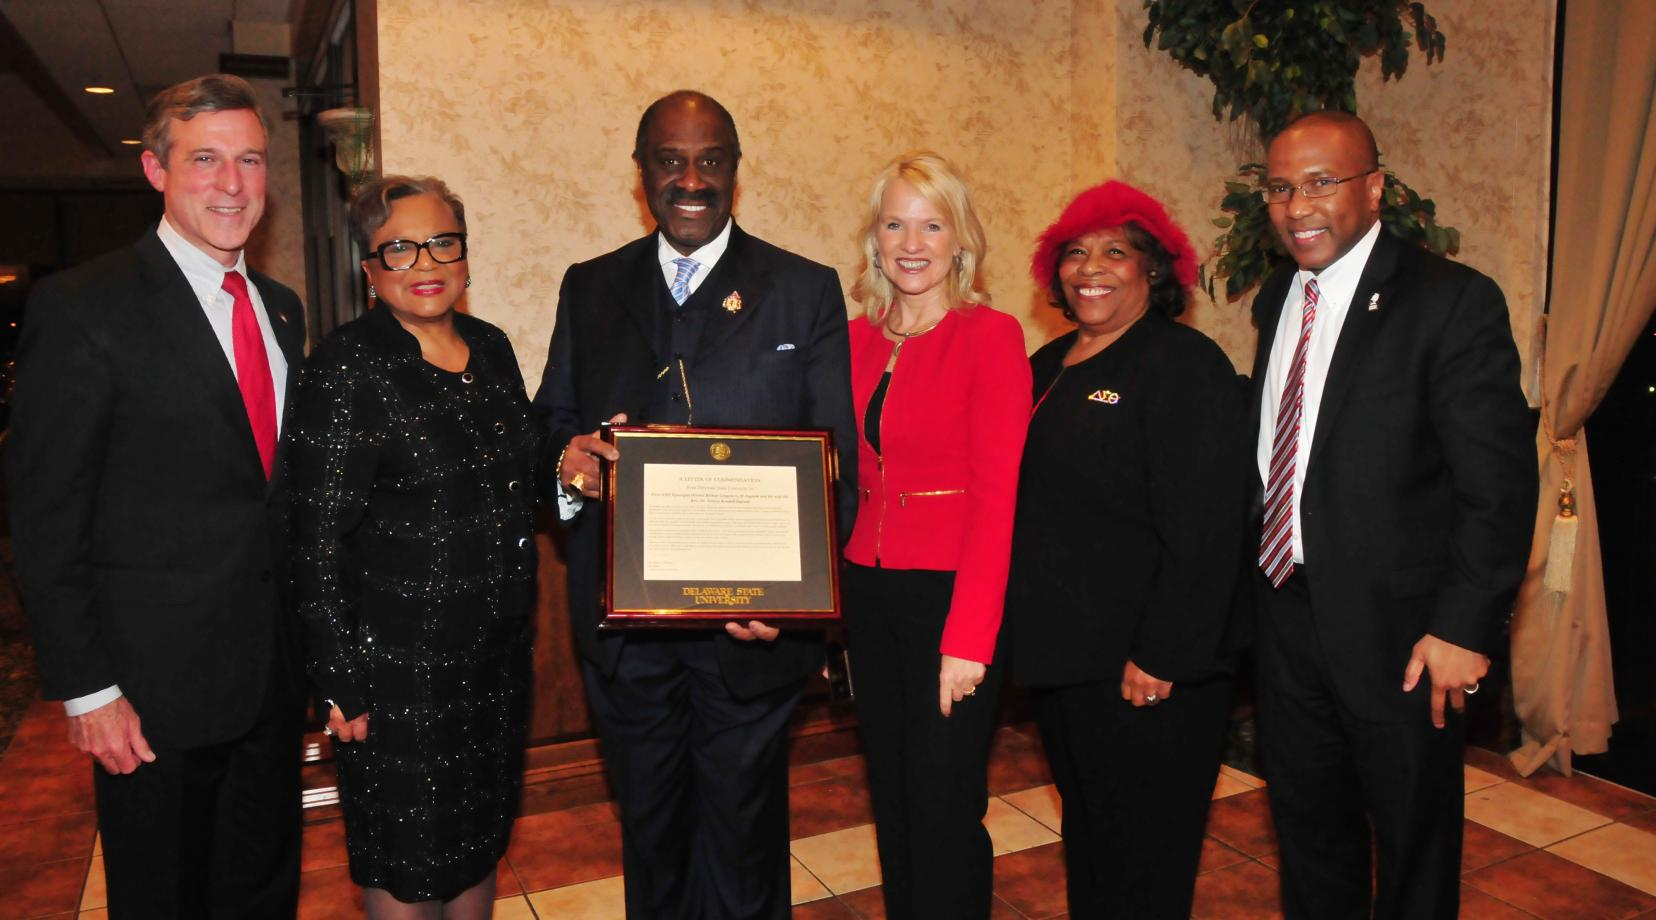 (L-r) Gov. John Carney, Rev. Dr. Jessica Kendall Ingram and her husband Bishop Gregory G.M. Ingram, Lt. Gov. Bethany Hall-Long, DSU Board of Trustees member Wilma Mishoe and DSU President Harry L. Williams, who presented the Ingrams with commendation from DSU.